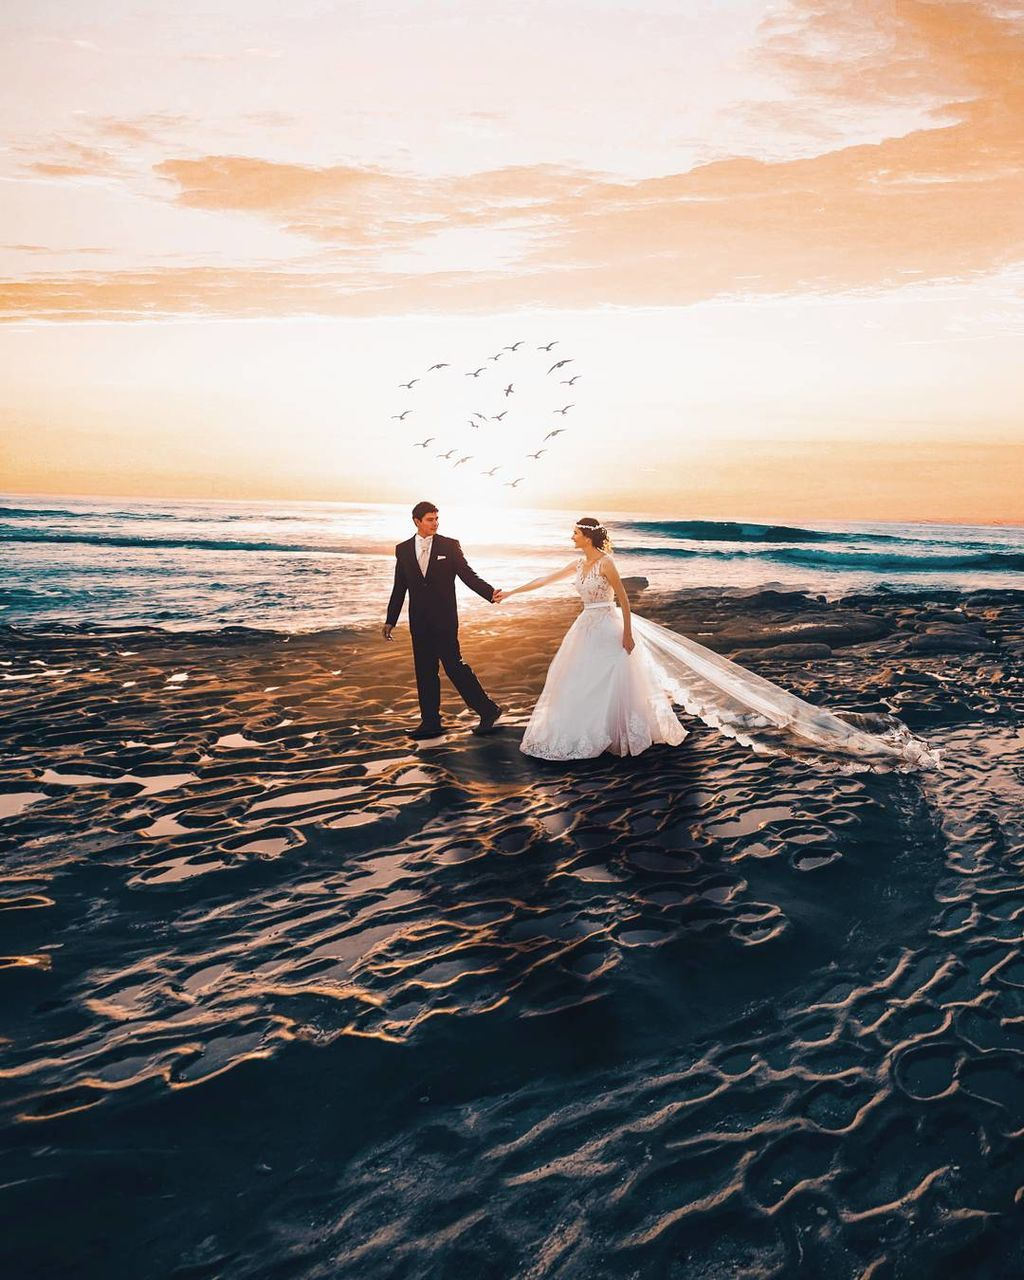 wedding, bride, wedding dress, sea, bridegroom, love, beach, sunset, celebration, nature, women, water, life events, scenics, groom, togetherness, real people, men, beauty in nature, full length, sand, young women, outdoors, married, horizon over water, sky, day, young adult, adult, people